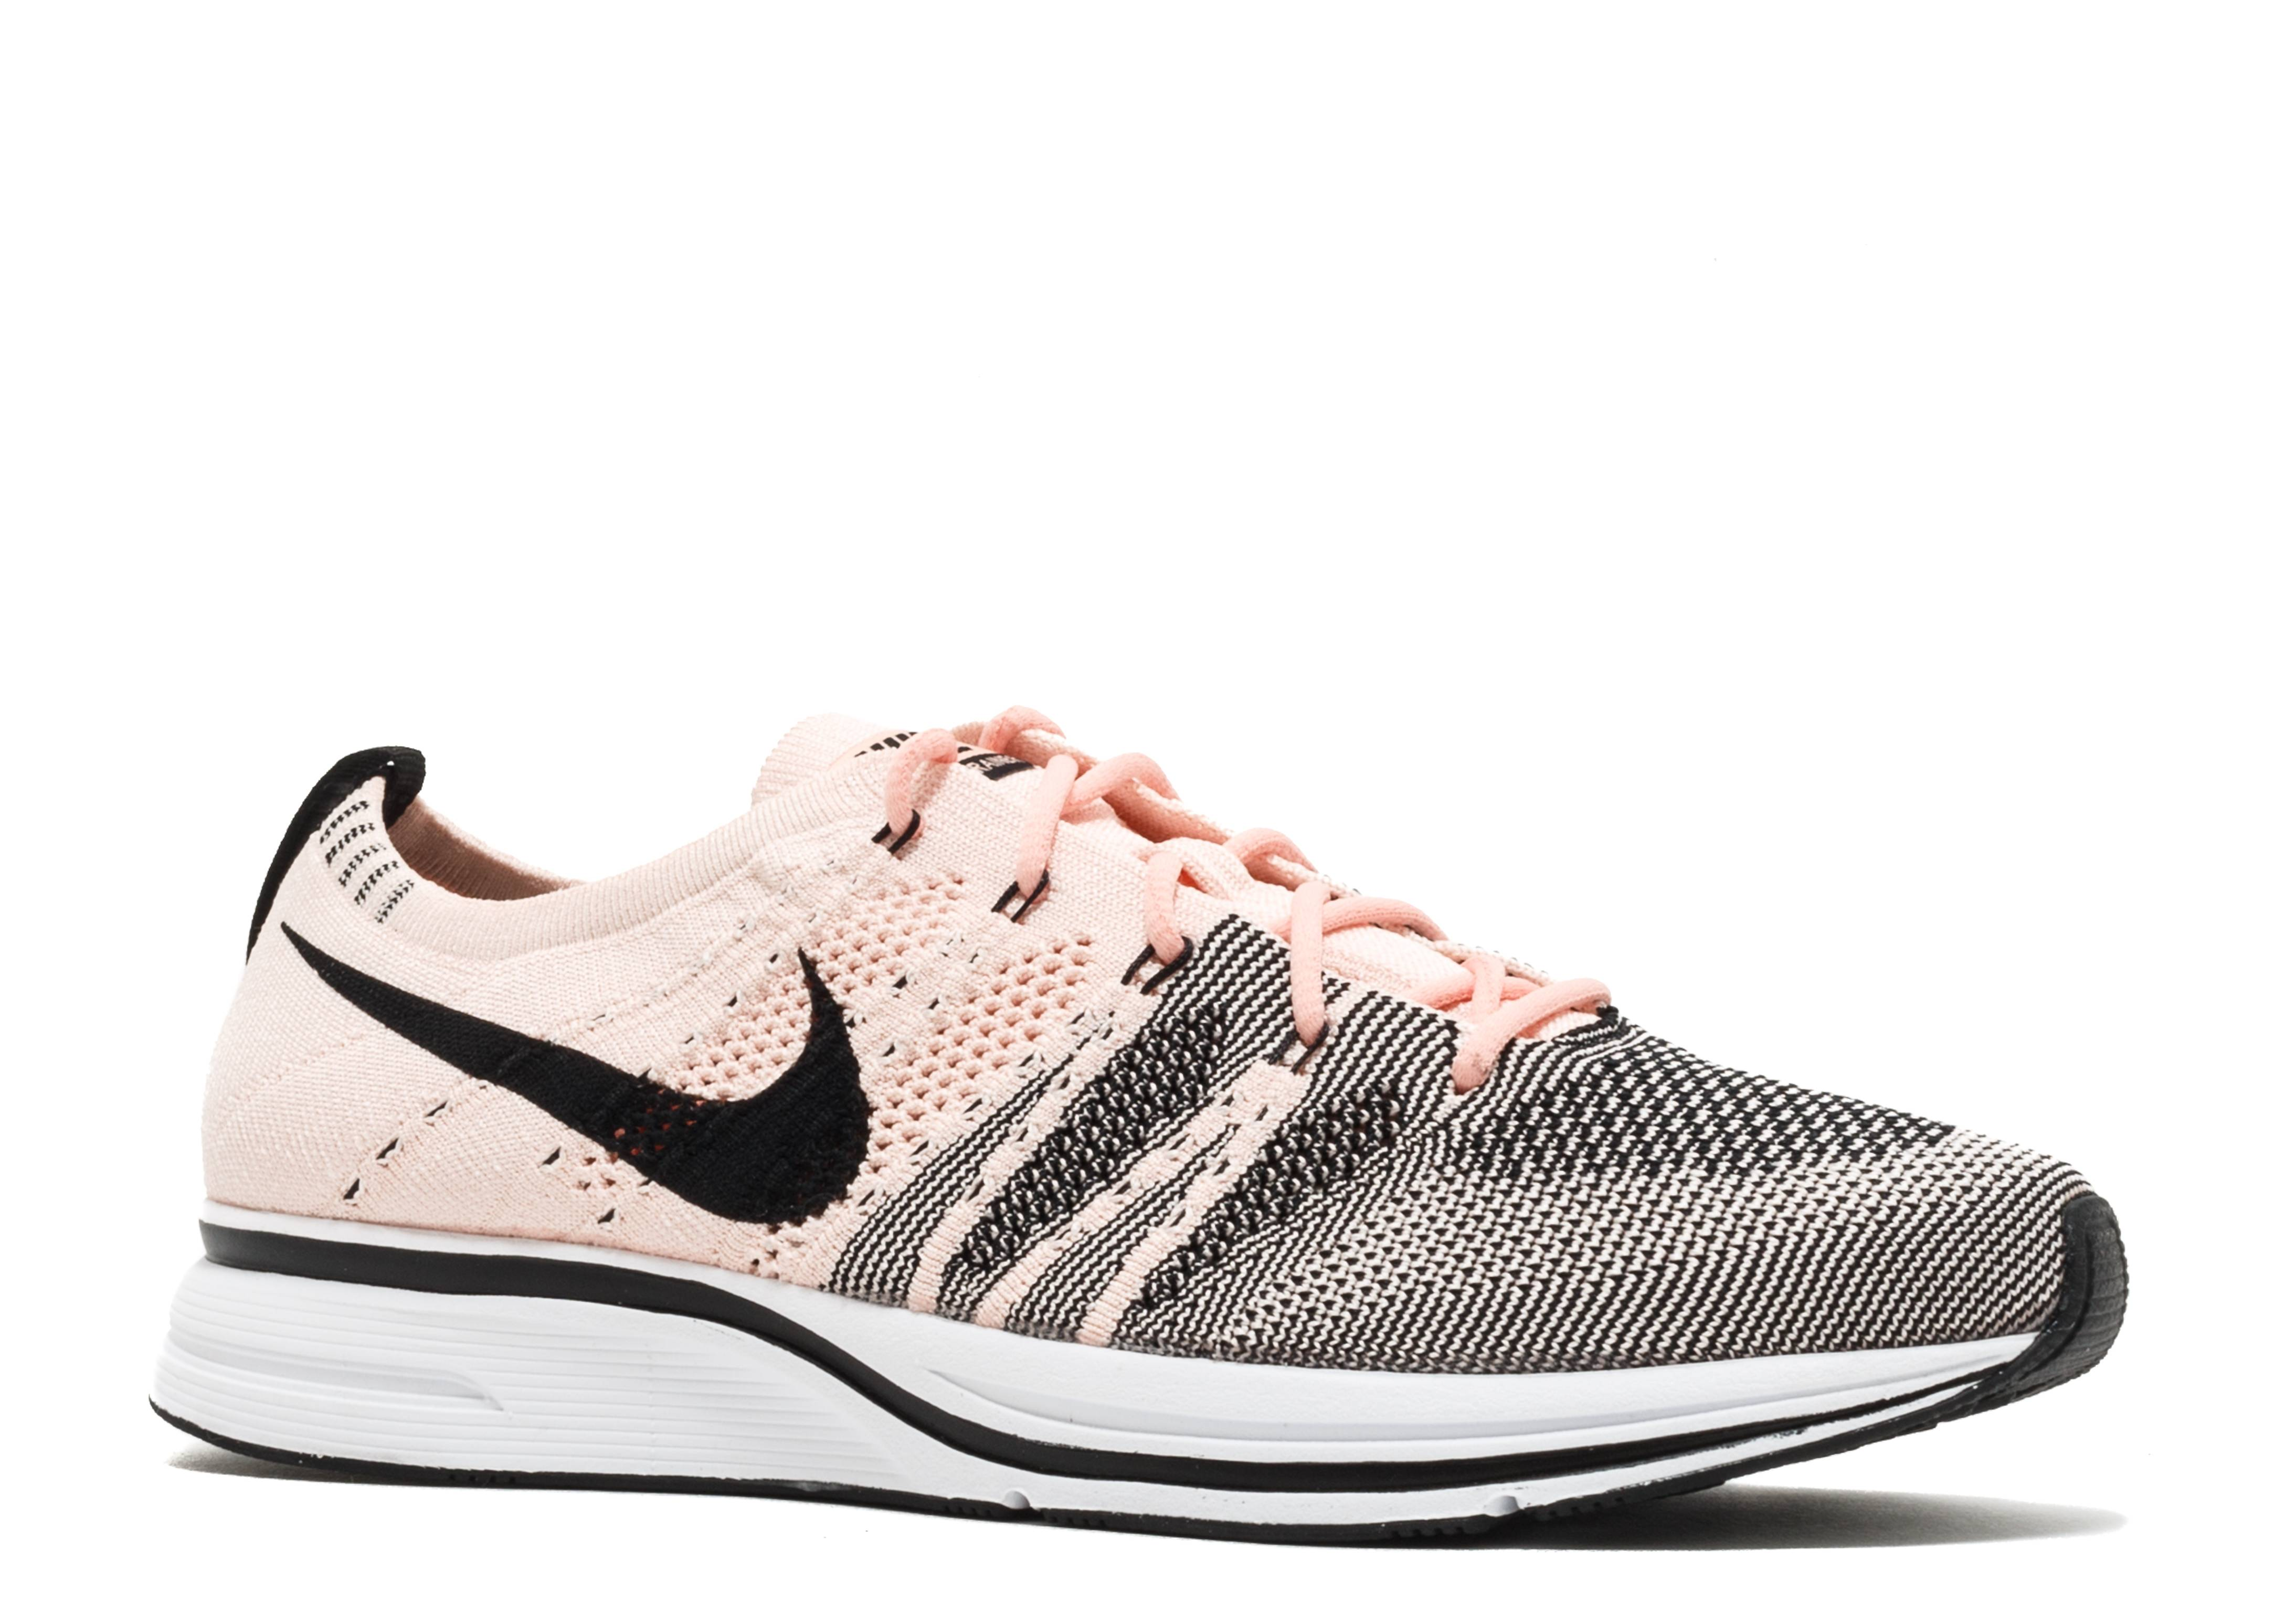 premium selection f0ef2 d99b6 ... where can i buy nike flyknit trainer sunset tint nike ah8396 600 sunset  tint black white